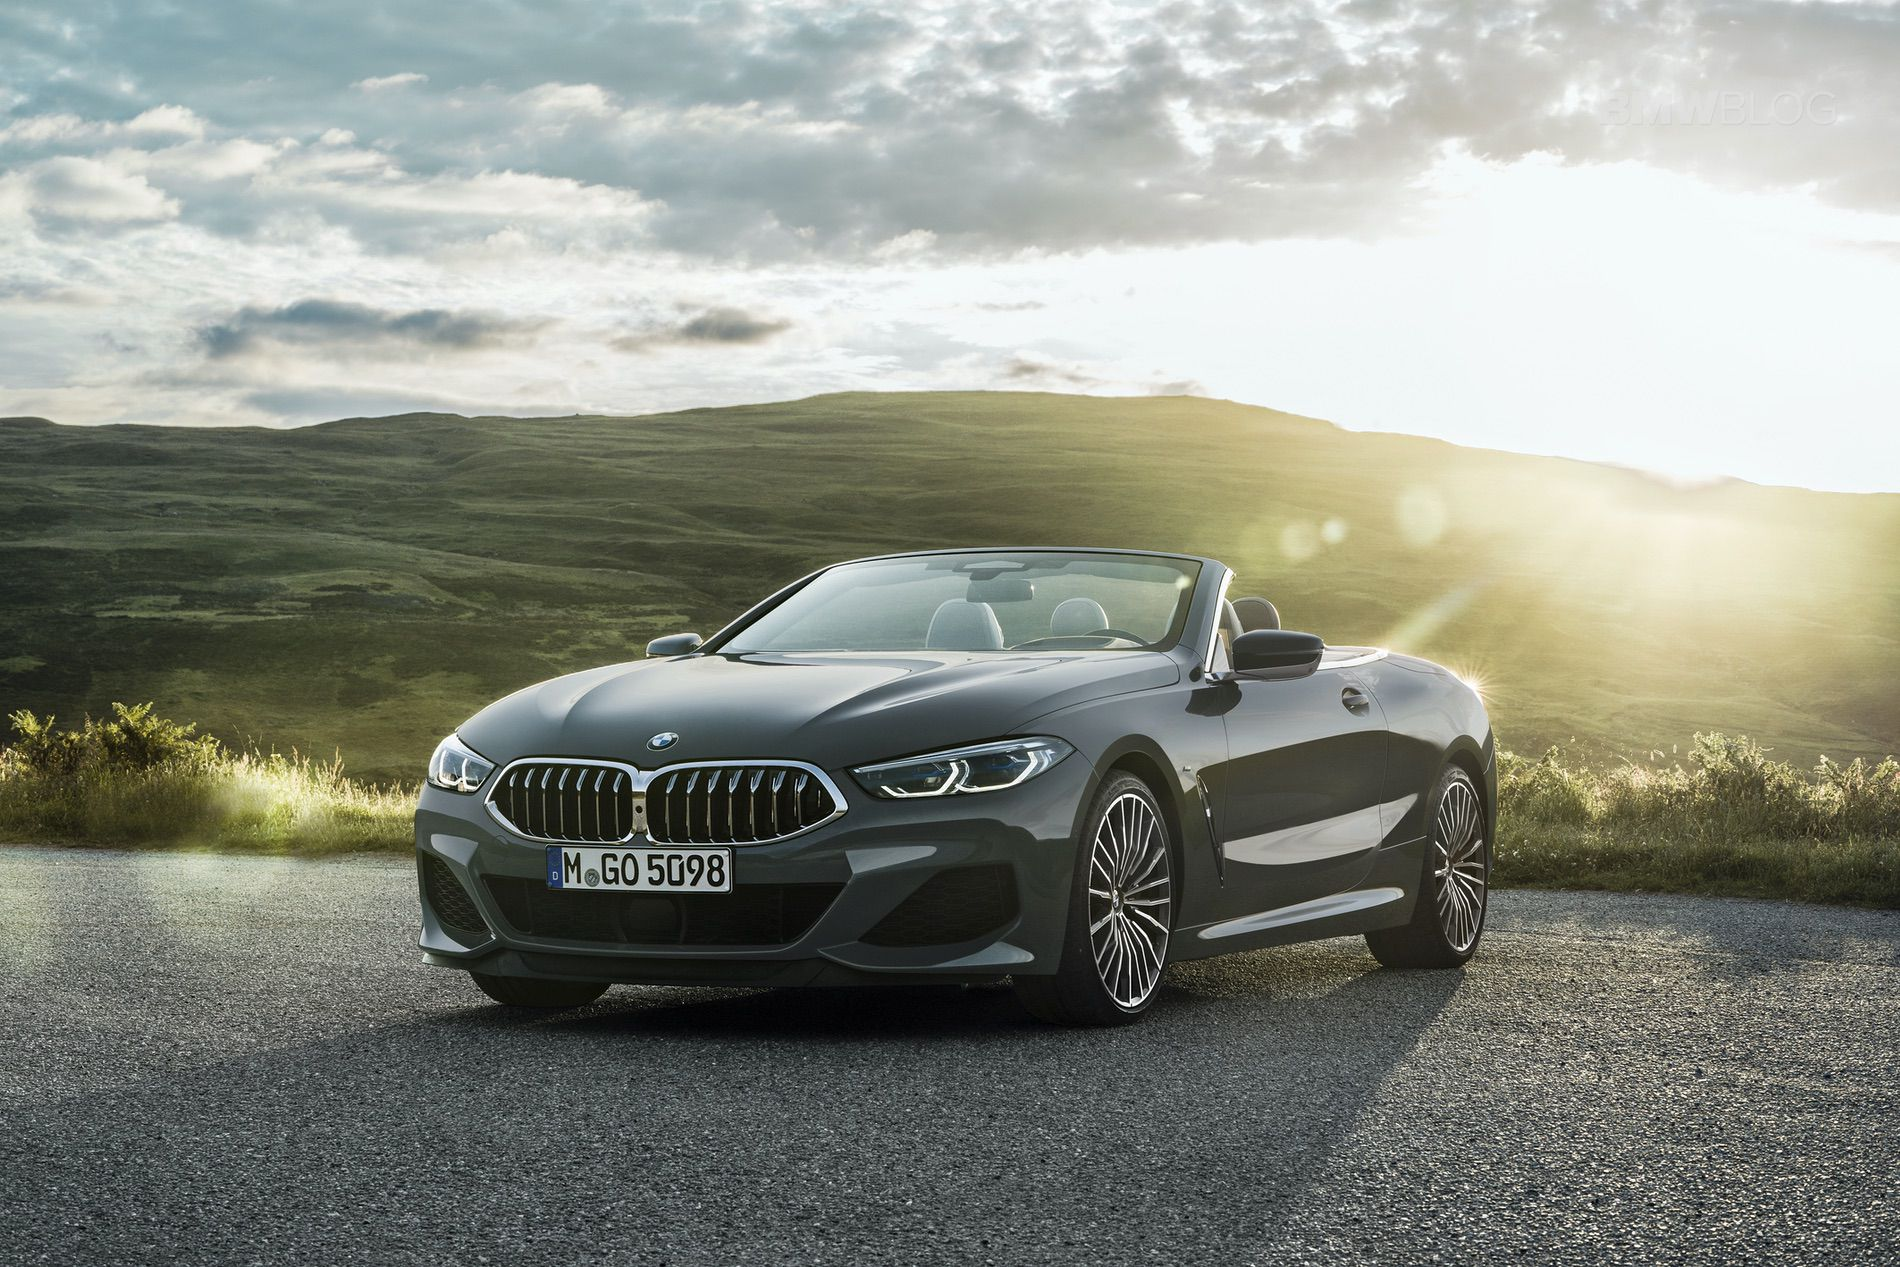 New BMW M850i xDrive convertible is coming to SA next year